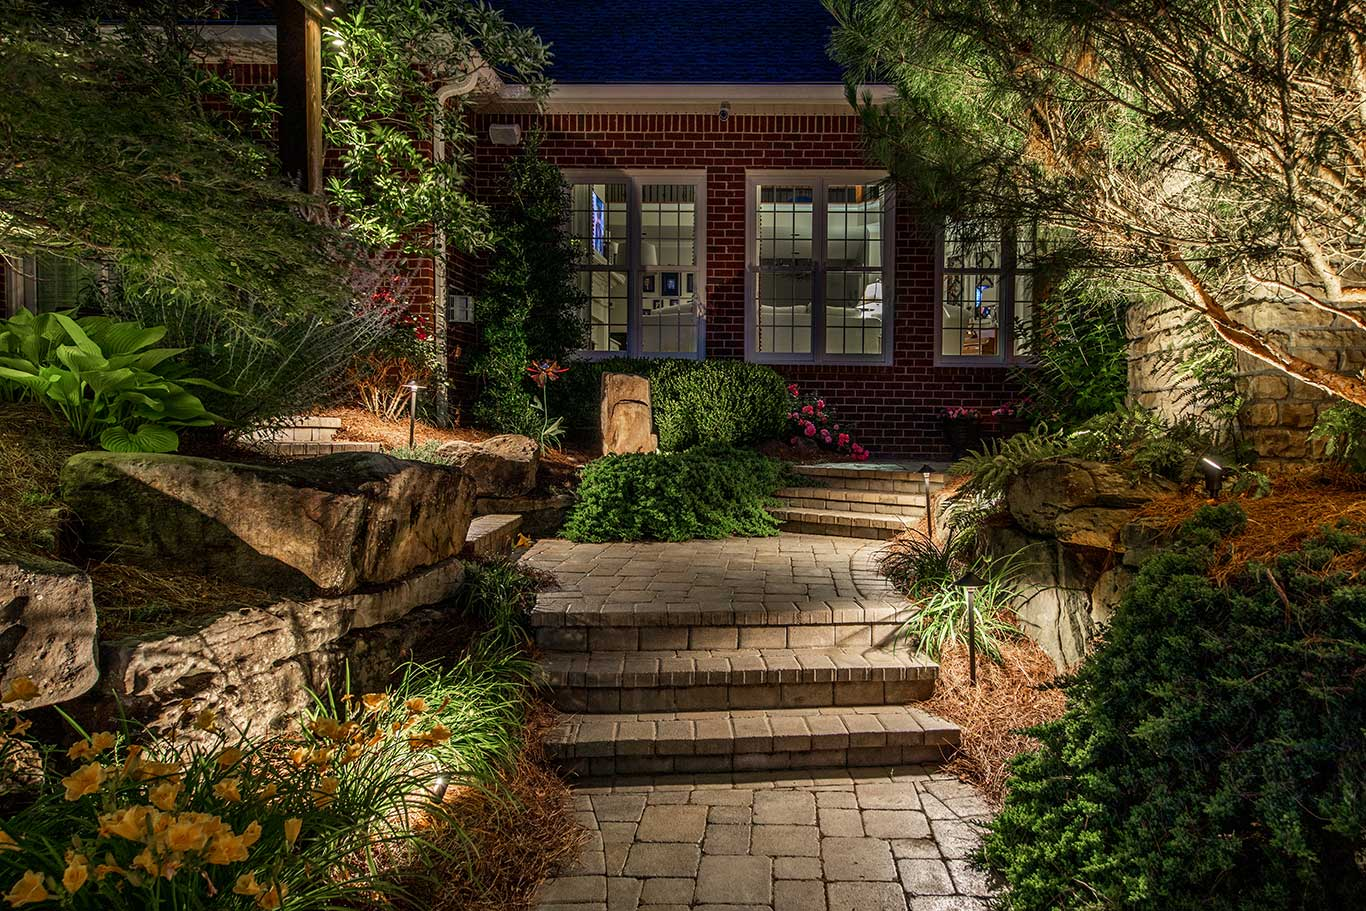 outdoor lighting for safety and visual interest